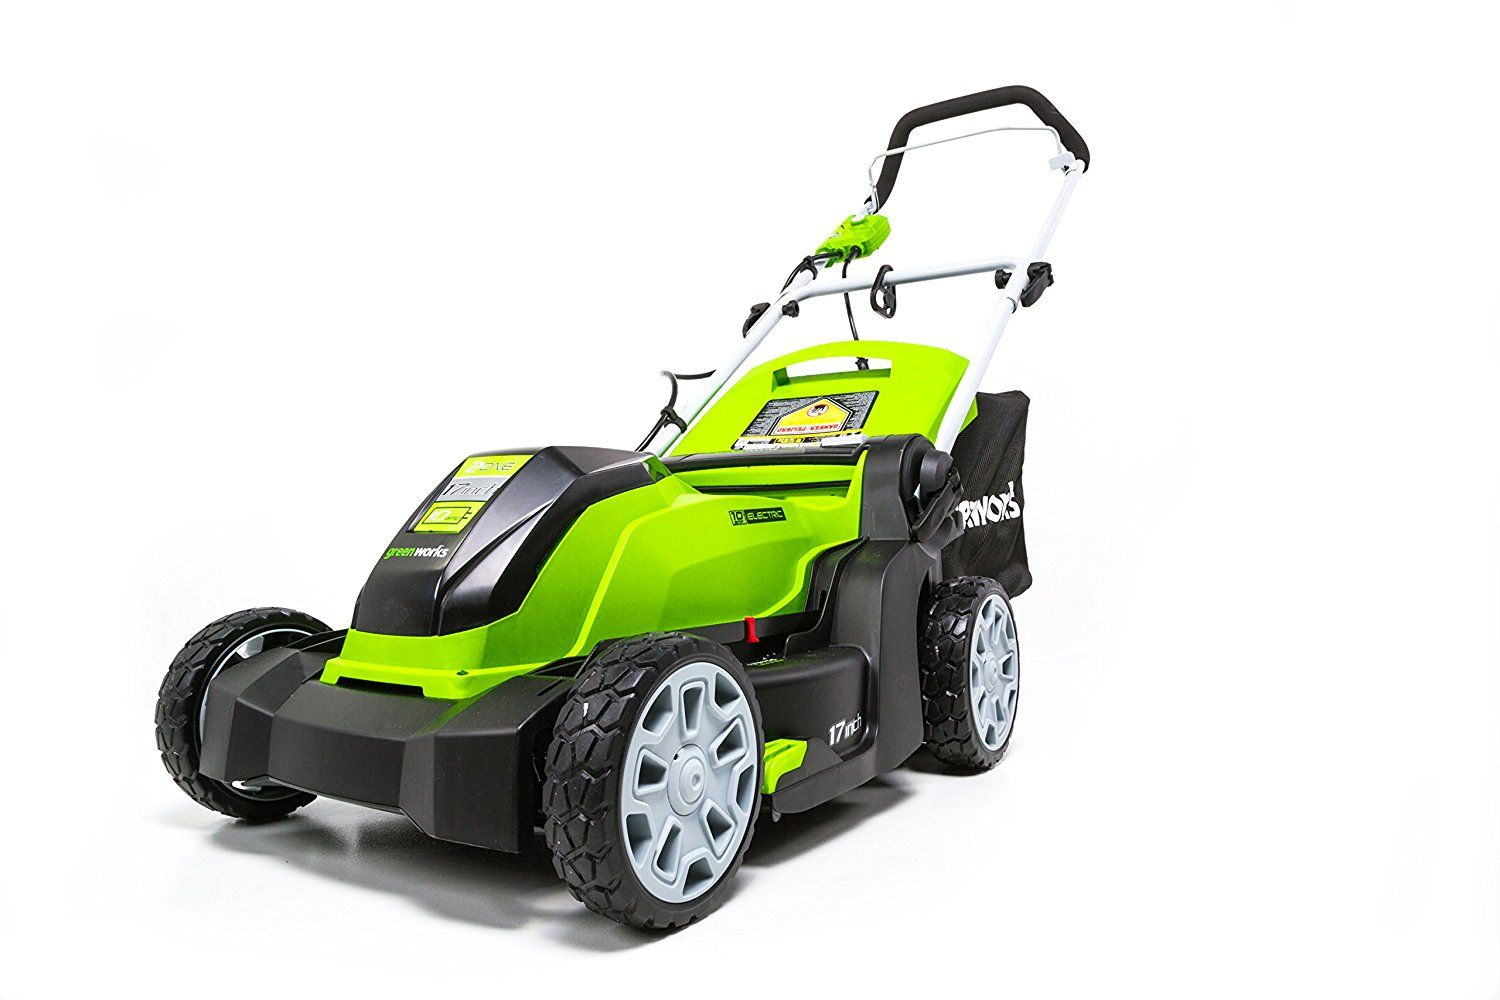 Best Push Lawn Mower 2019 Riding Lawn Mower Best Lawn